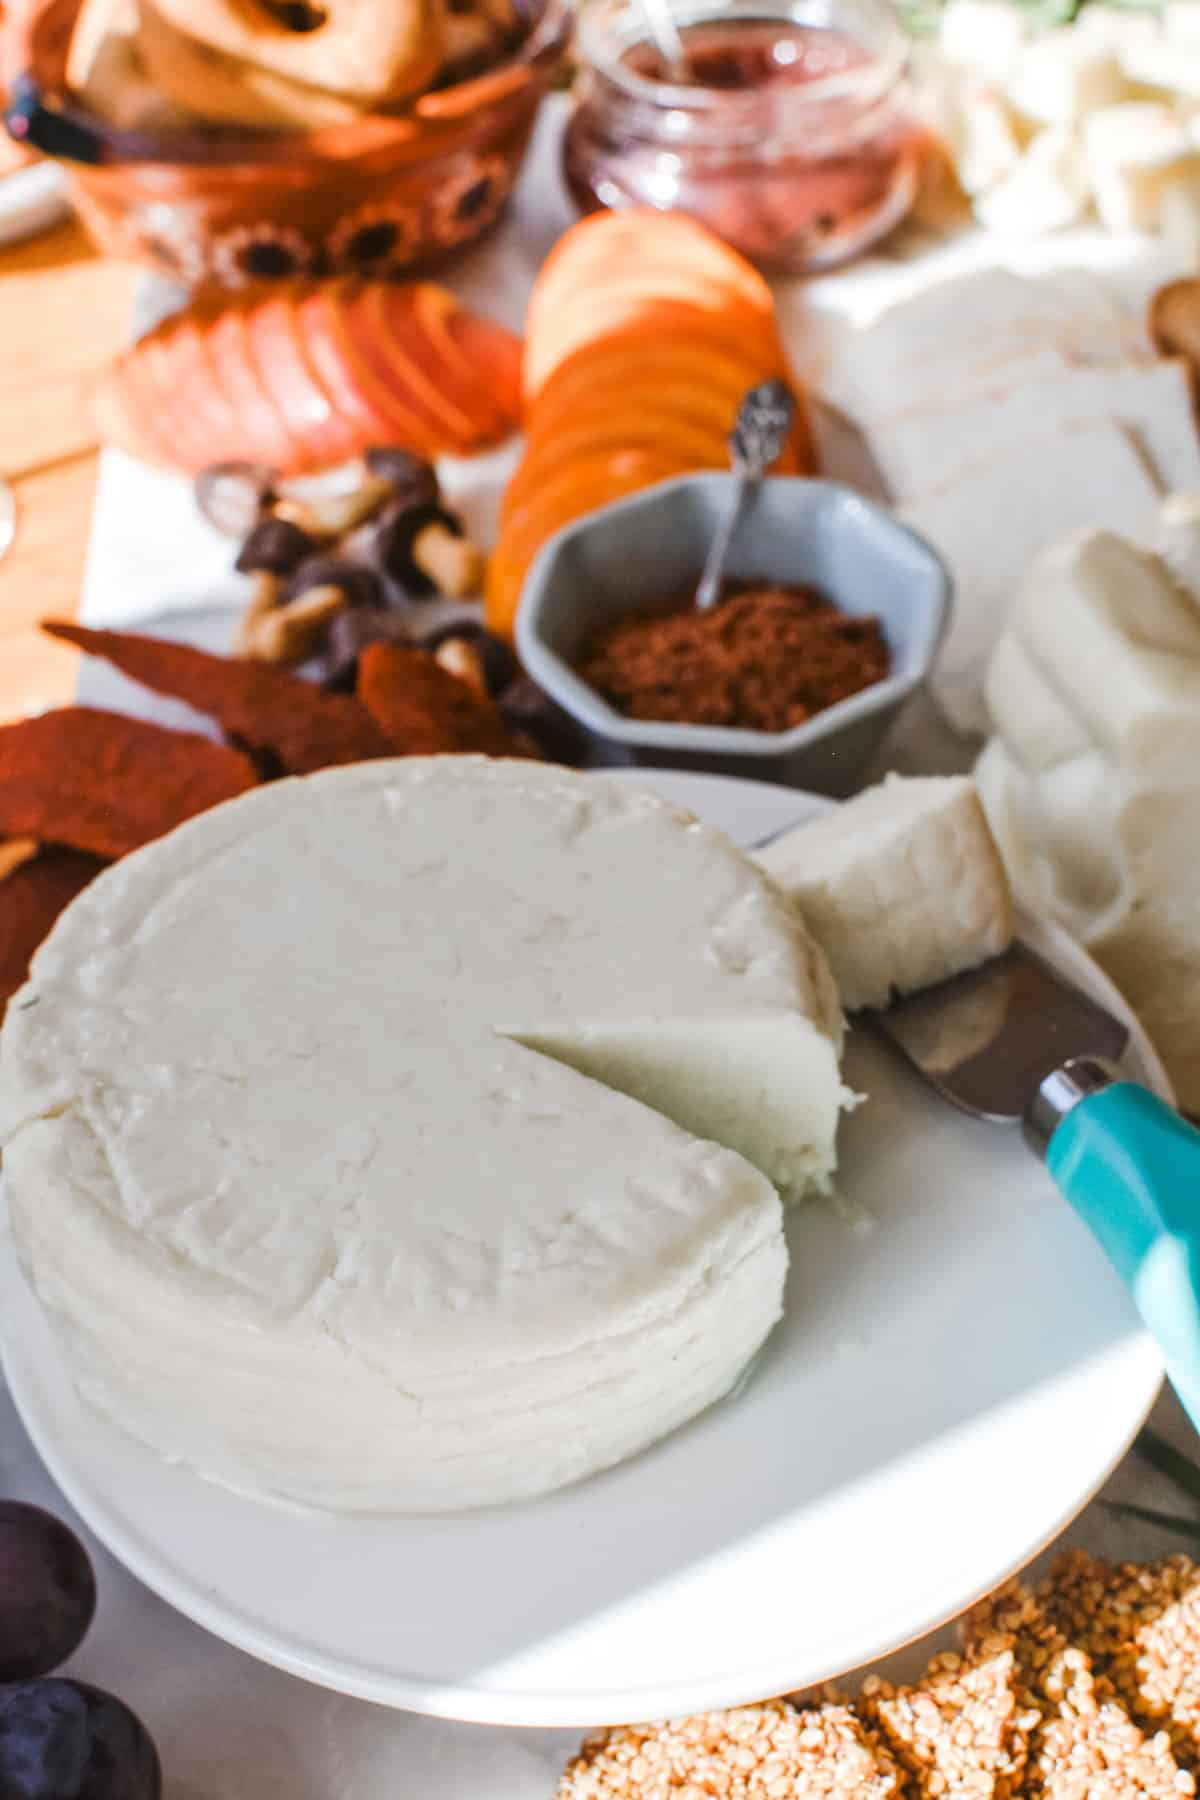 A wheel of white cheese with a piece cut out and sitting on a cheese knife with a light blue handle sitting on a marble slab with snacks on it.